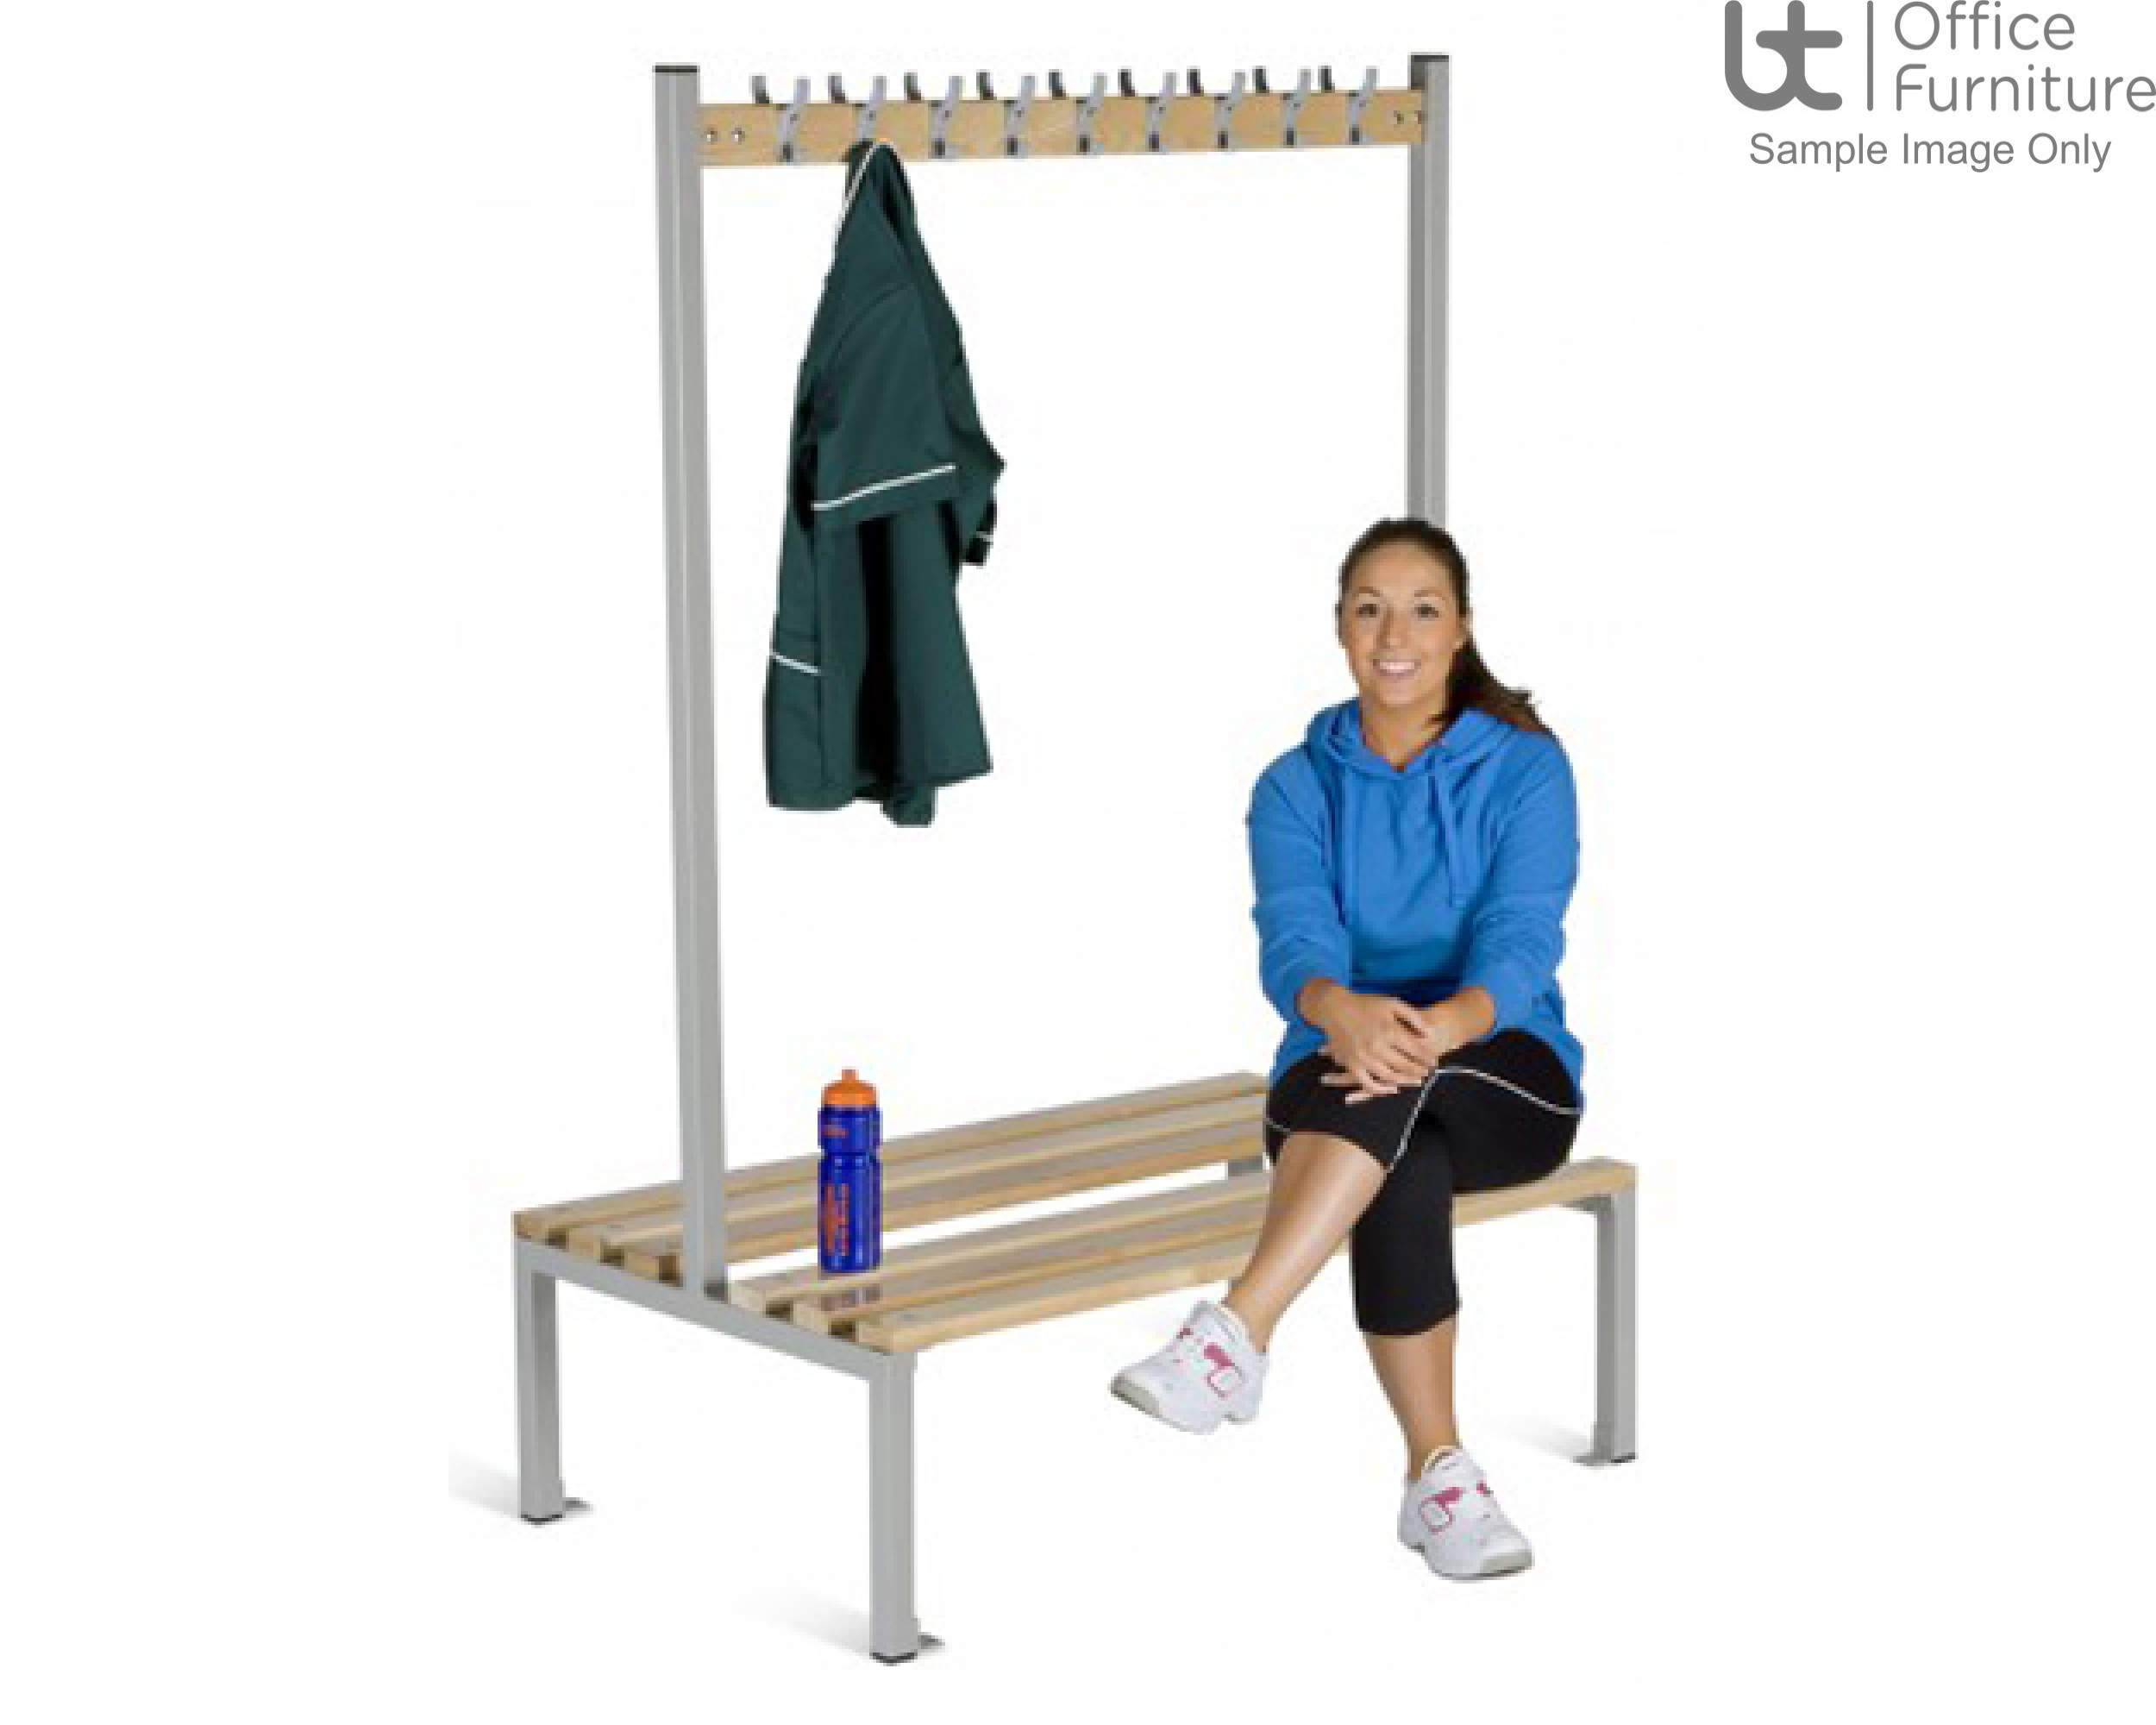 HOF Cloakroom Equipment - Double Sided Island Seating